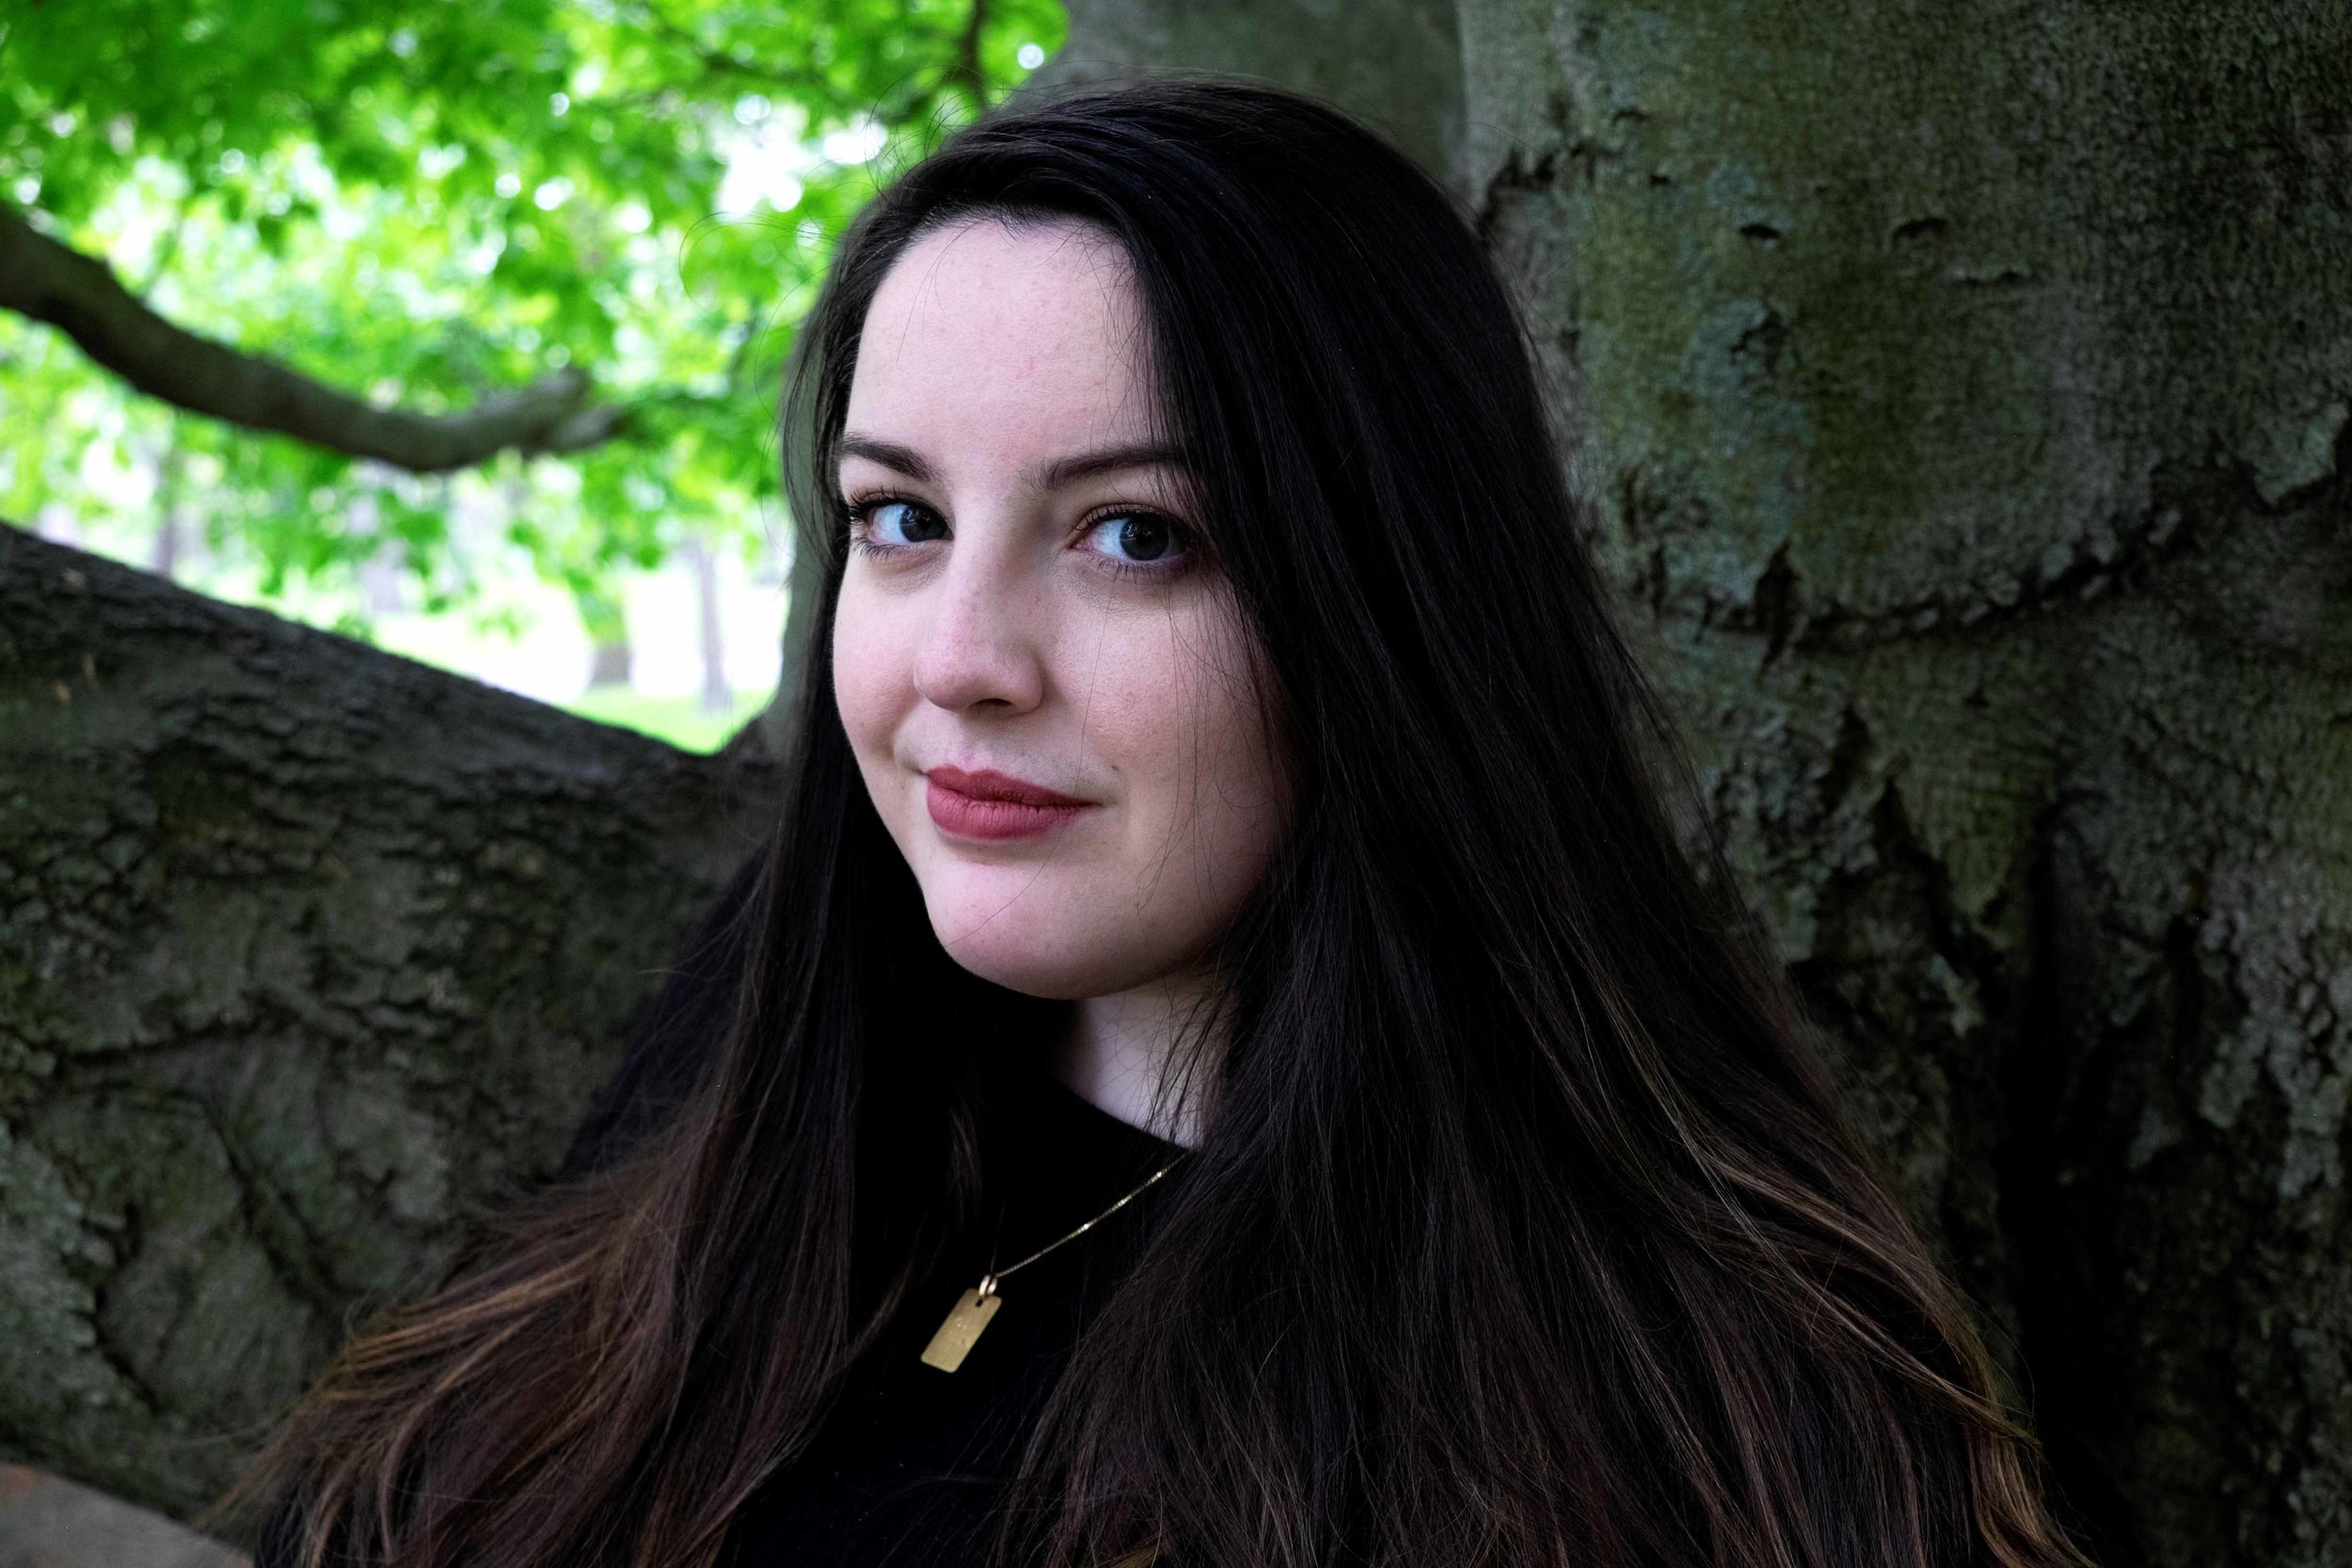 Rory Power - Rory Power grew up in Boston, received her undergraduate degree at Middlebury College, and went on to earn an MA in prose fiction from the University of East Anglia. She lives in Massachusetts. Wilder Girls is her first novel.